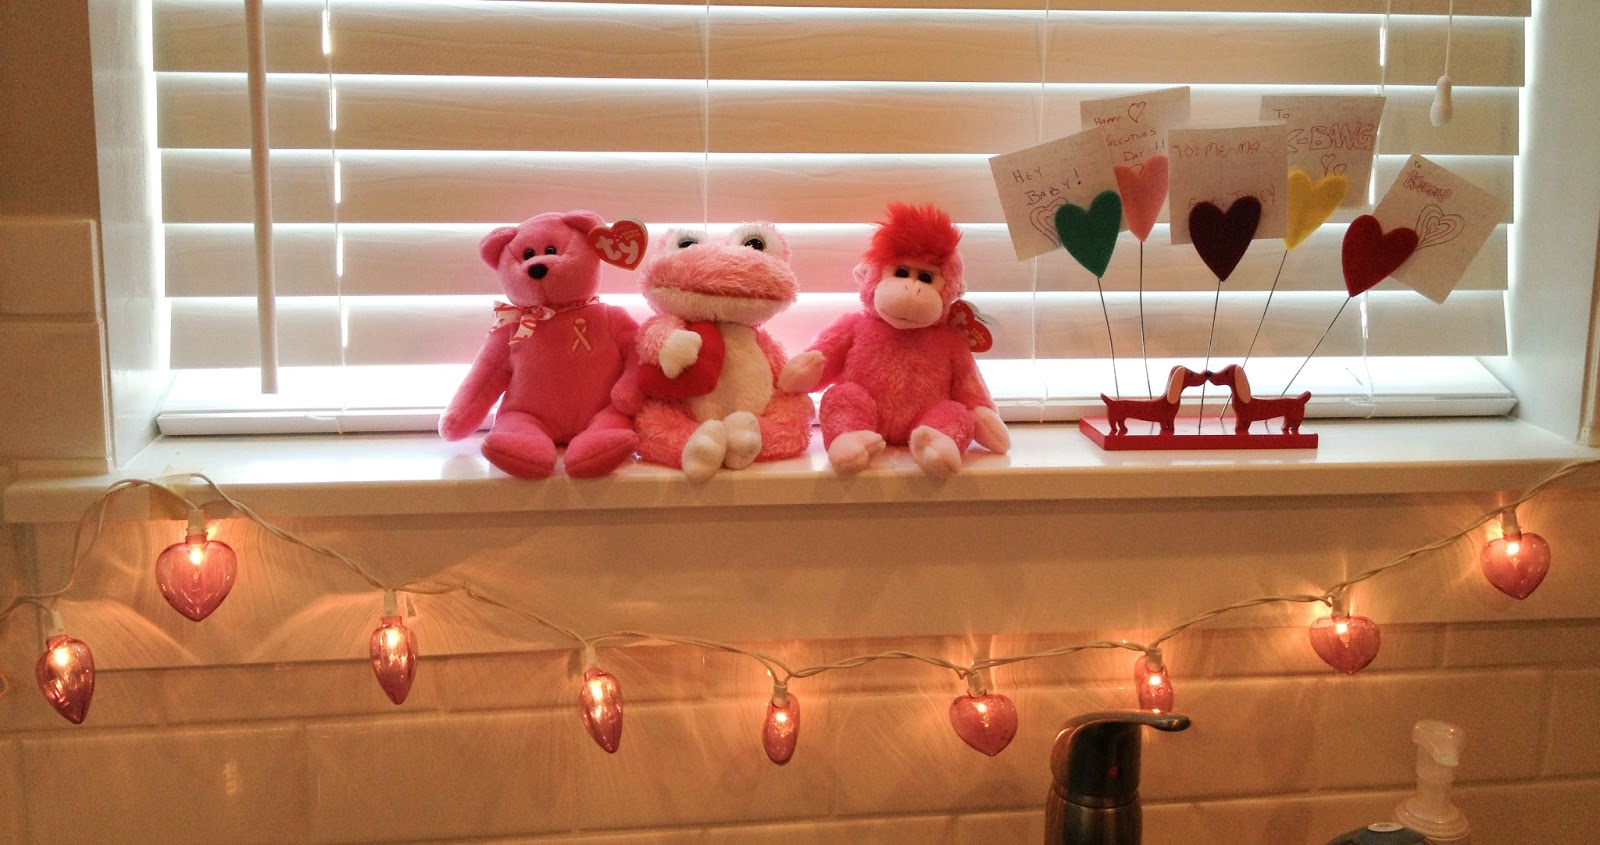 valentines, valentines day, red, pink, valentines decor, fashion blog, fashion blogger, style blog, style blogger, mens fashion, mens fashion blog, mens style, mens style blog, womens style blog, anthropologie ootd blog, anthropologie ootd, anthropologie, ootd, mens ootd, womens ootd,